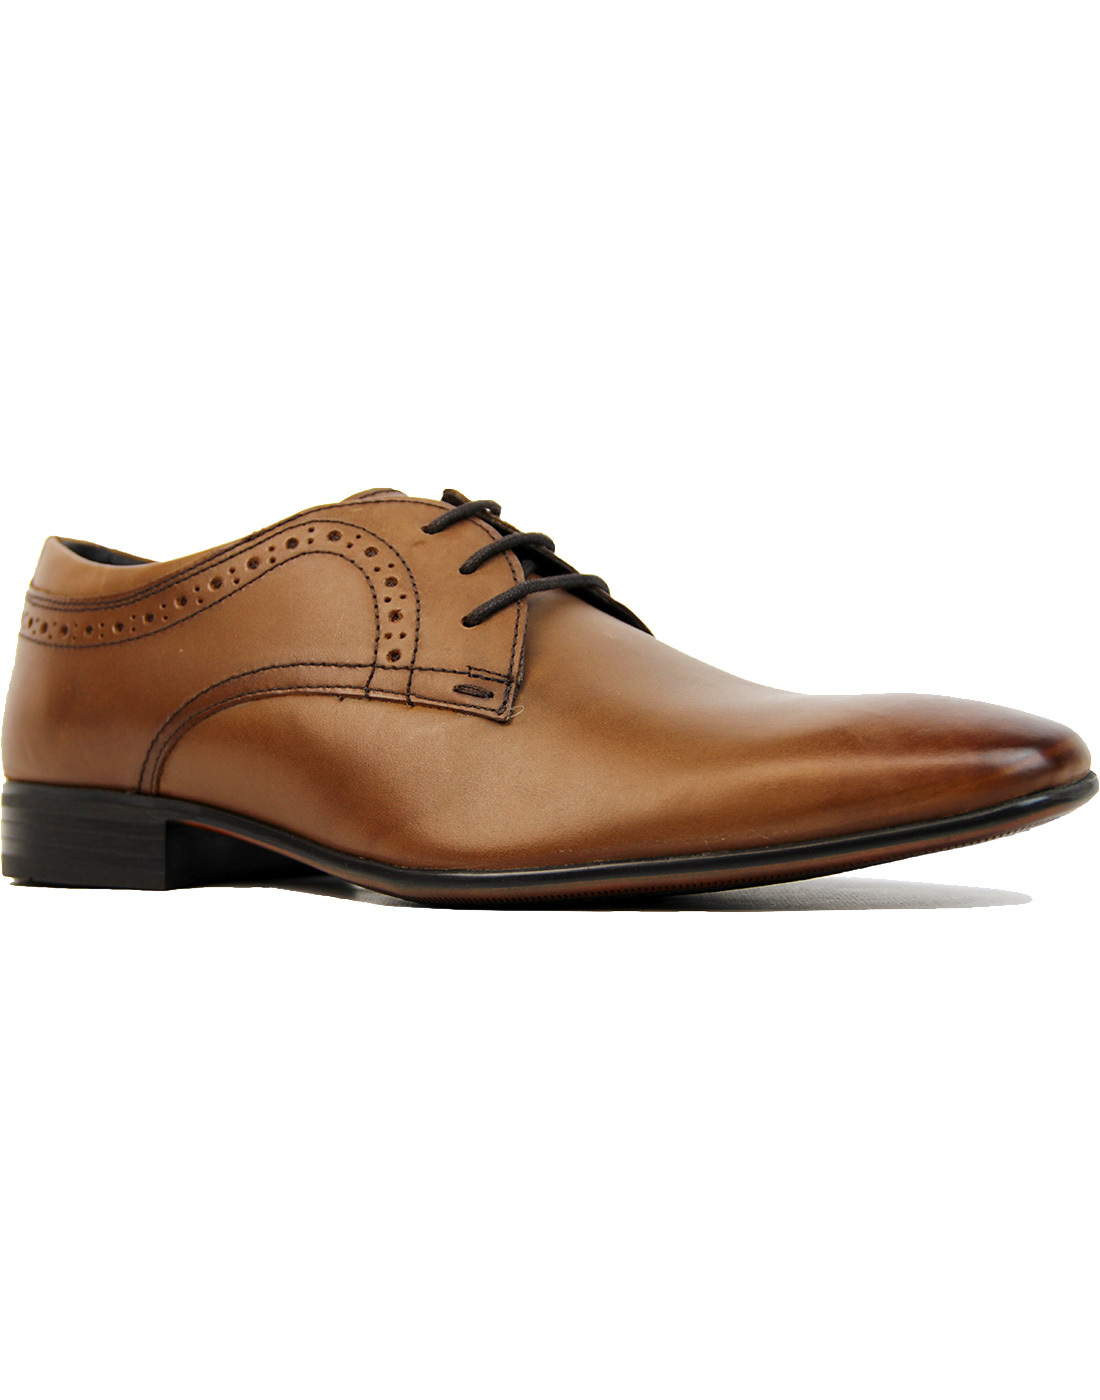 Pullman IKON Mens Retro Causal derby shoes TAN